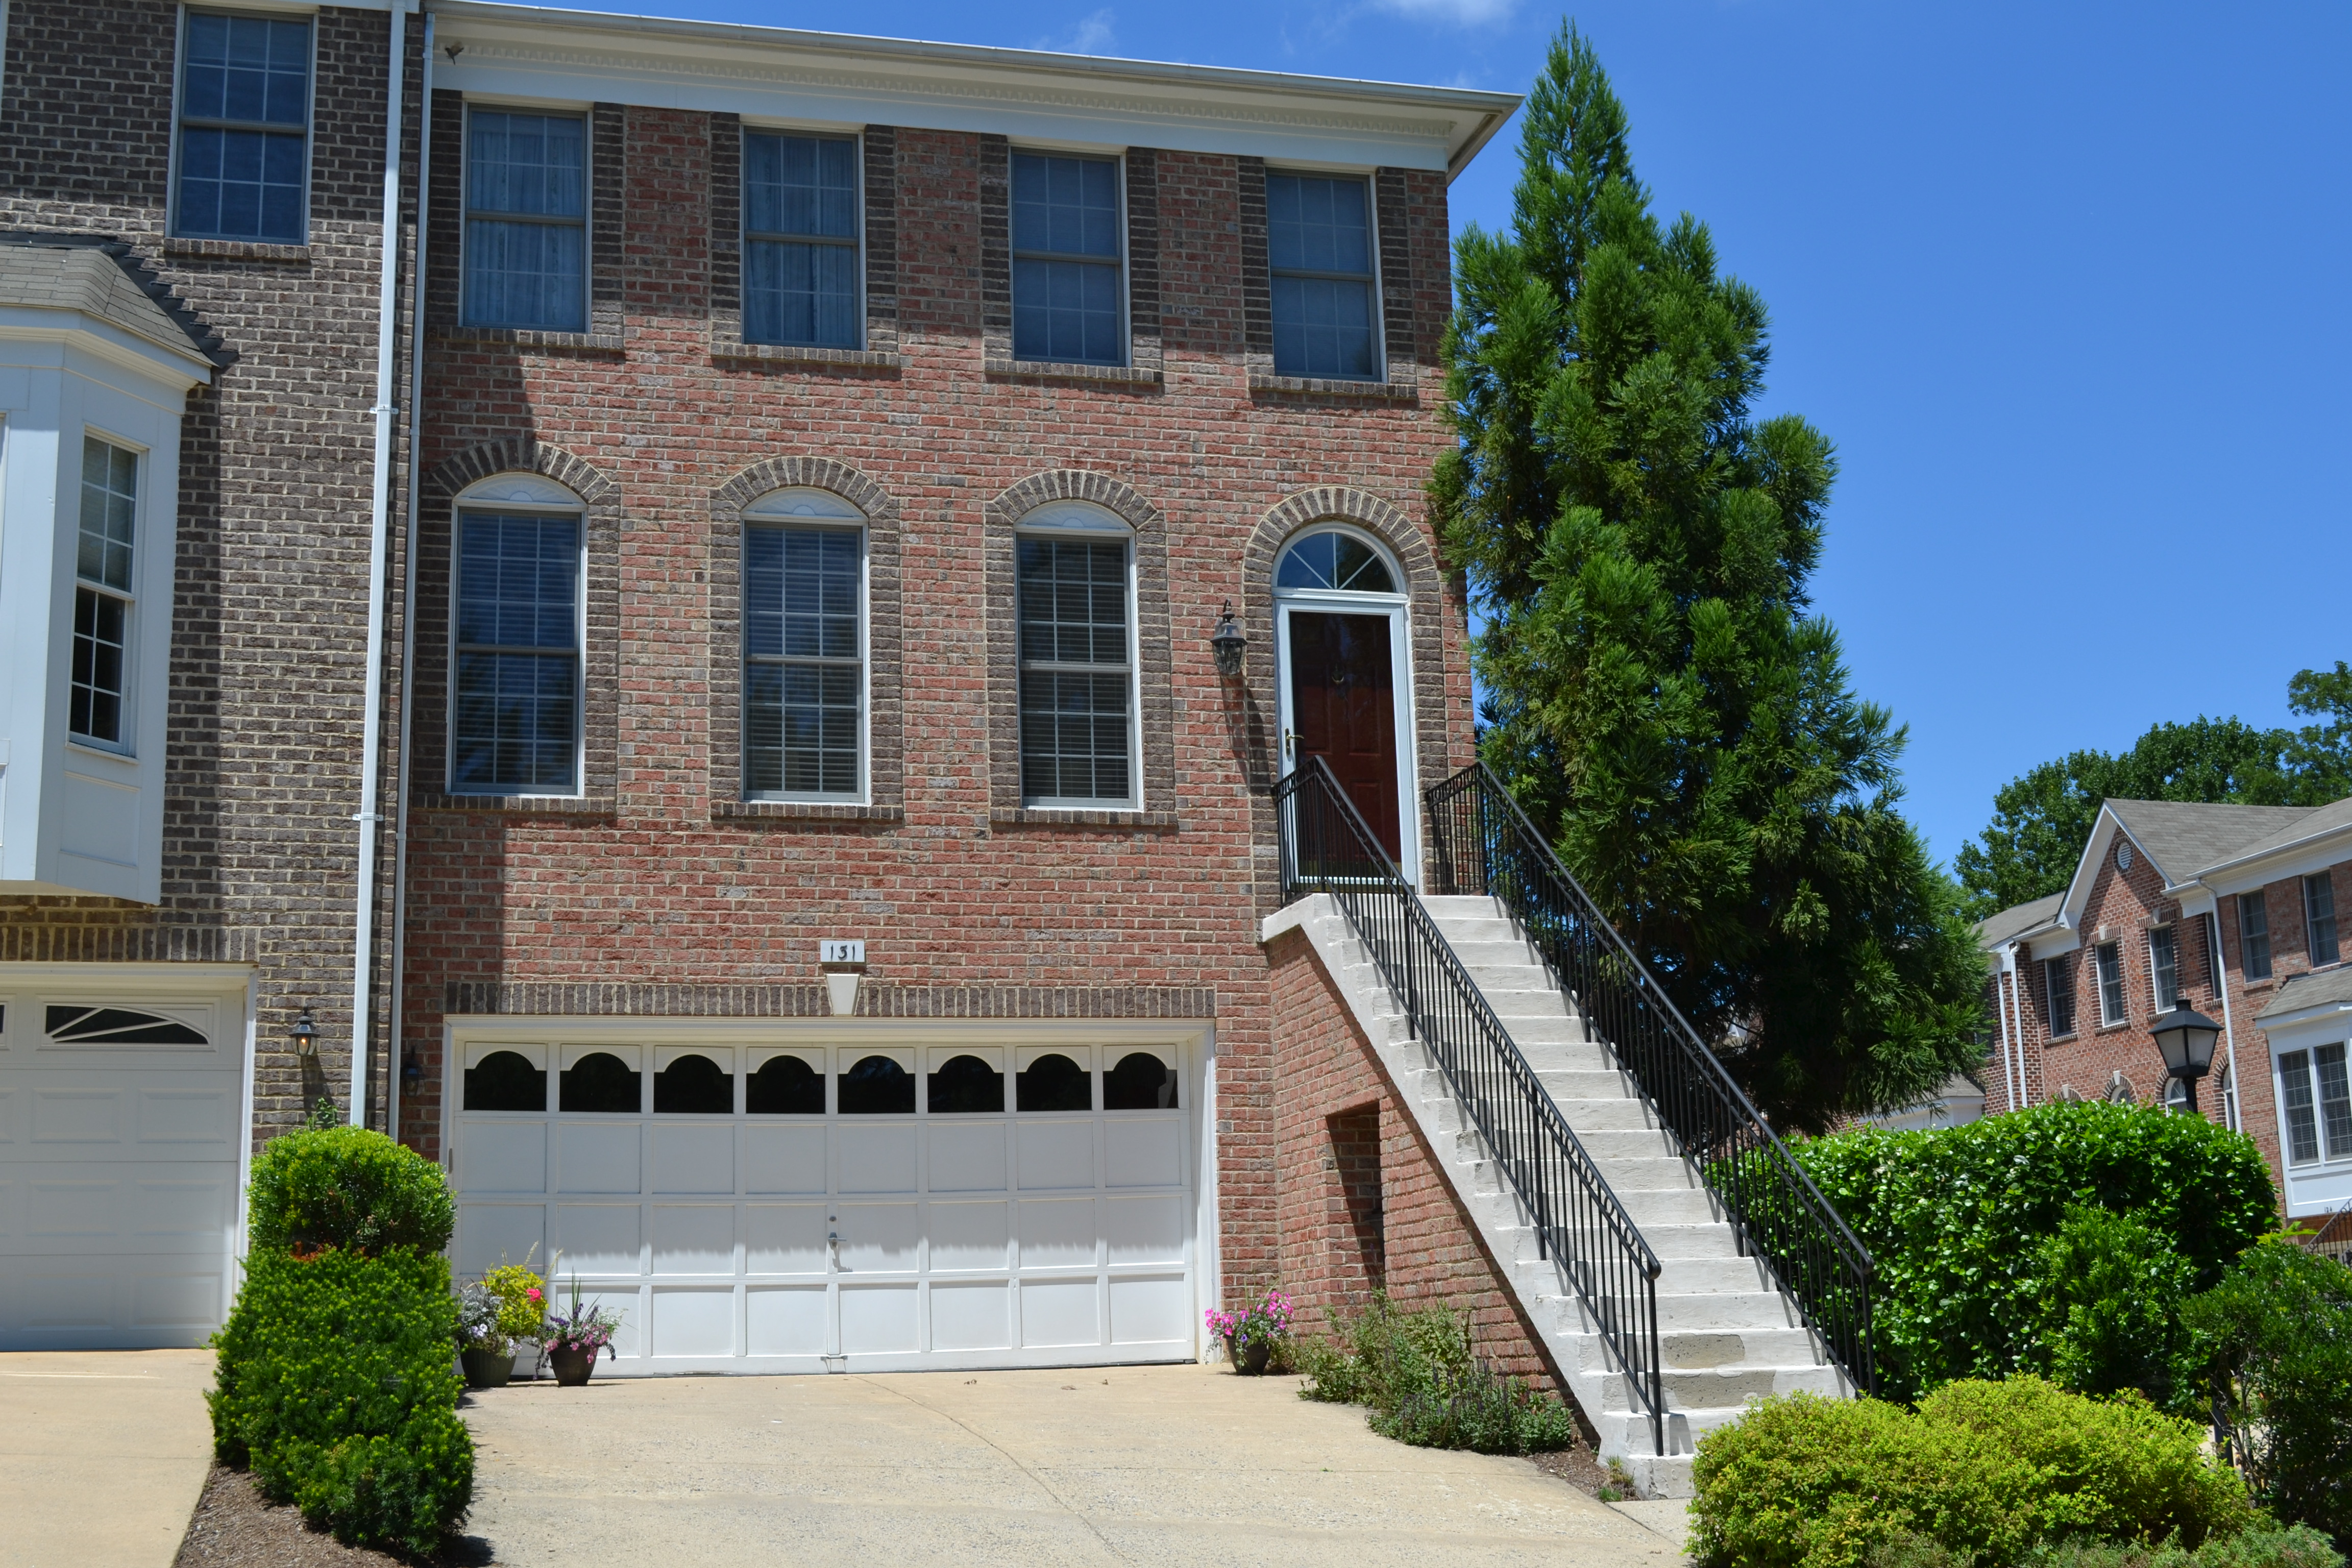 For Sale Vienna VA Garage Townhome